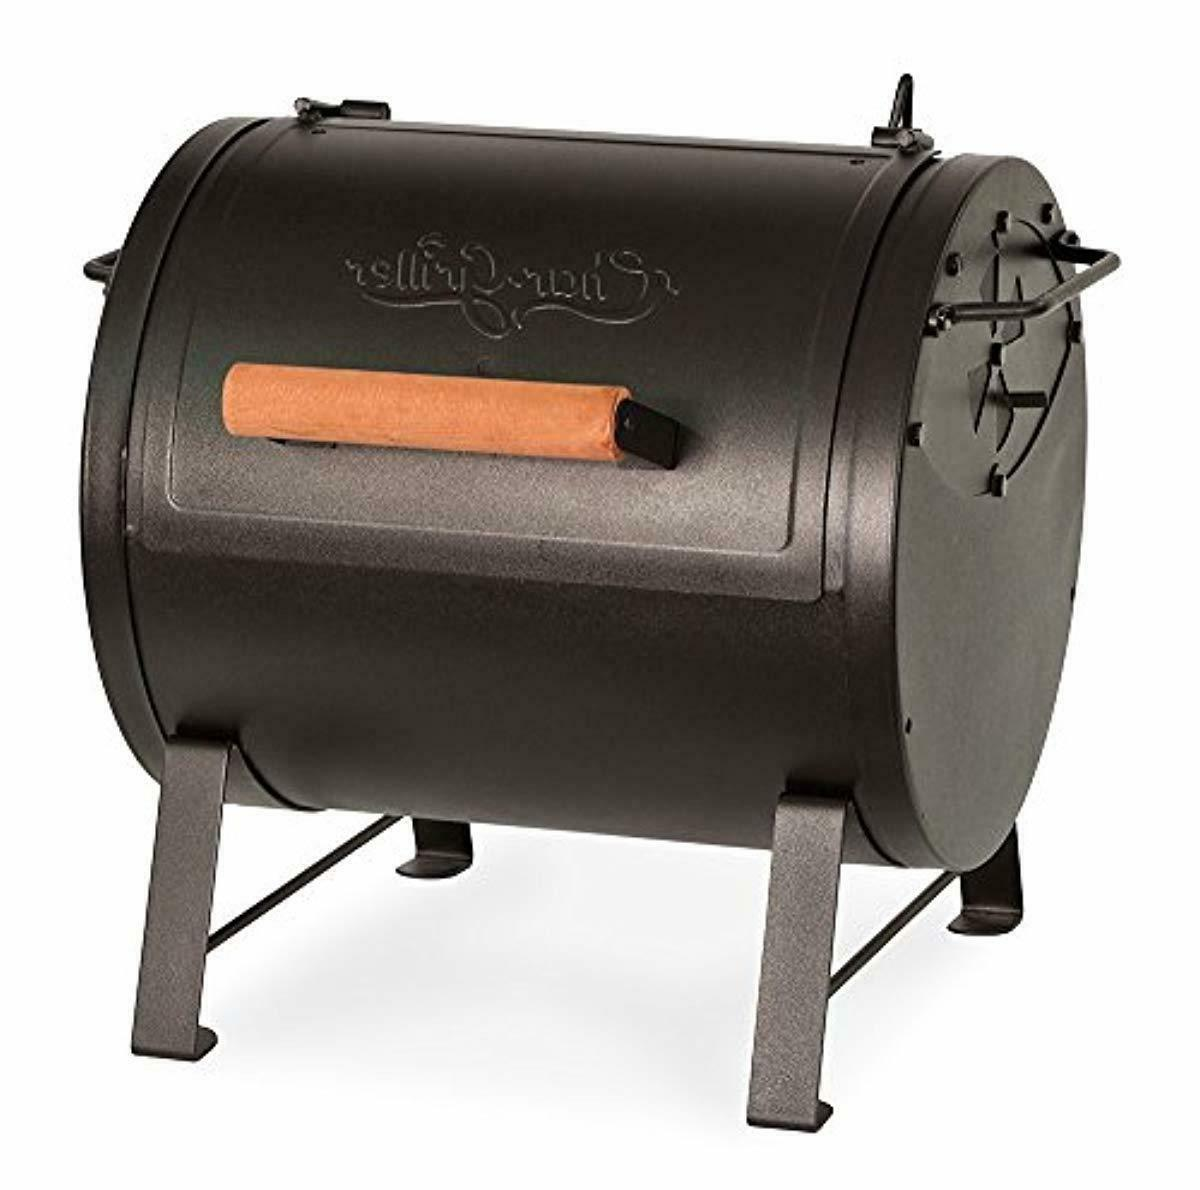 char griller e22424 table top charcoal grill